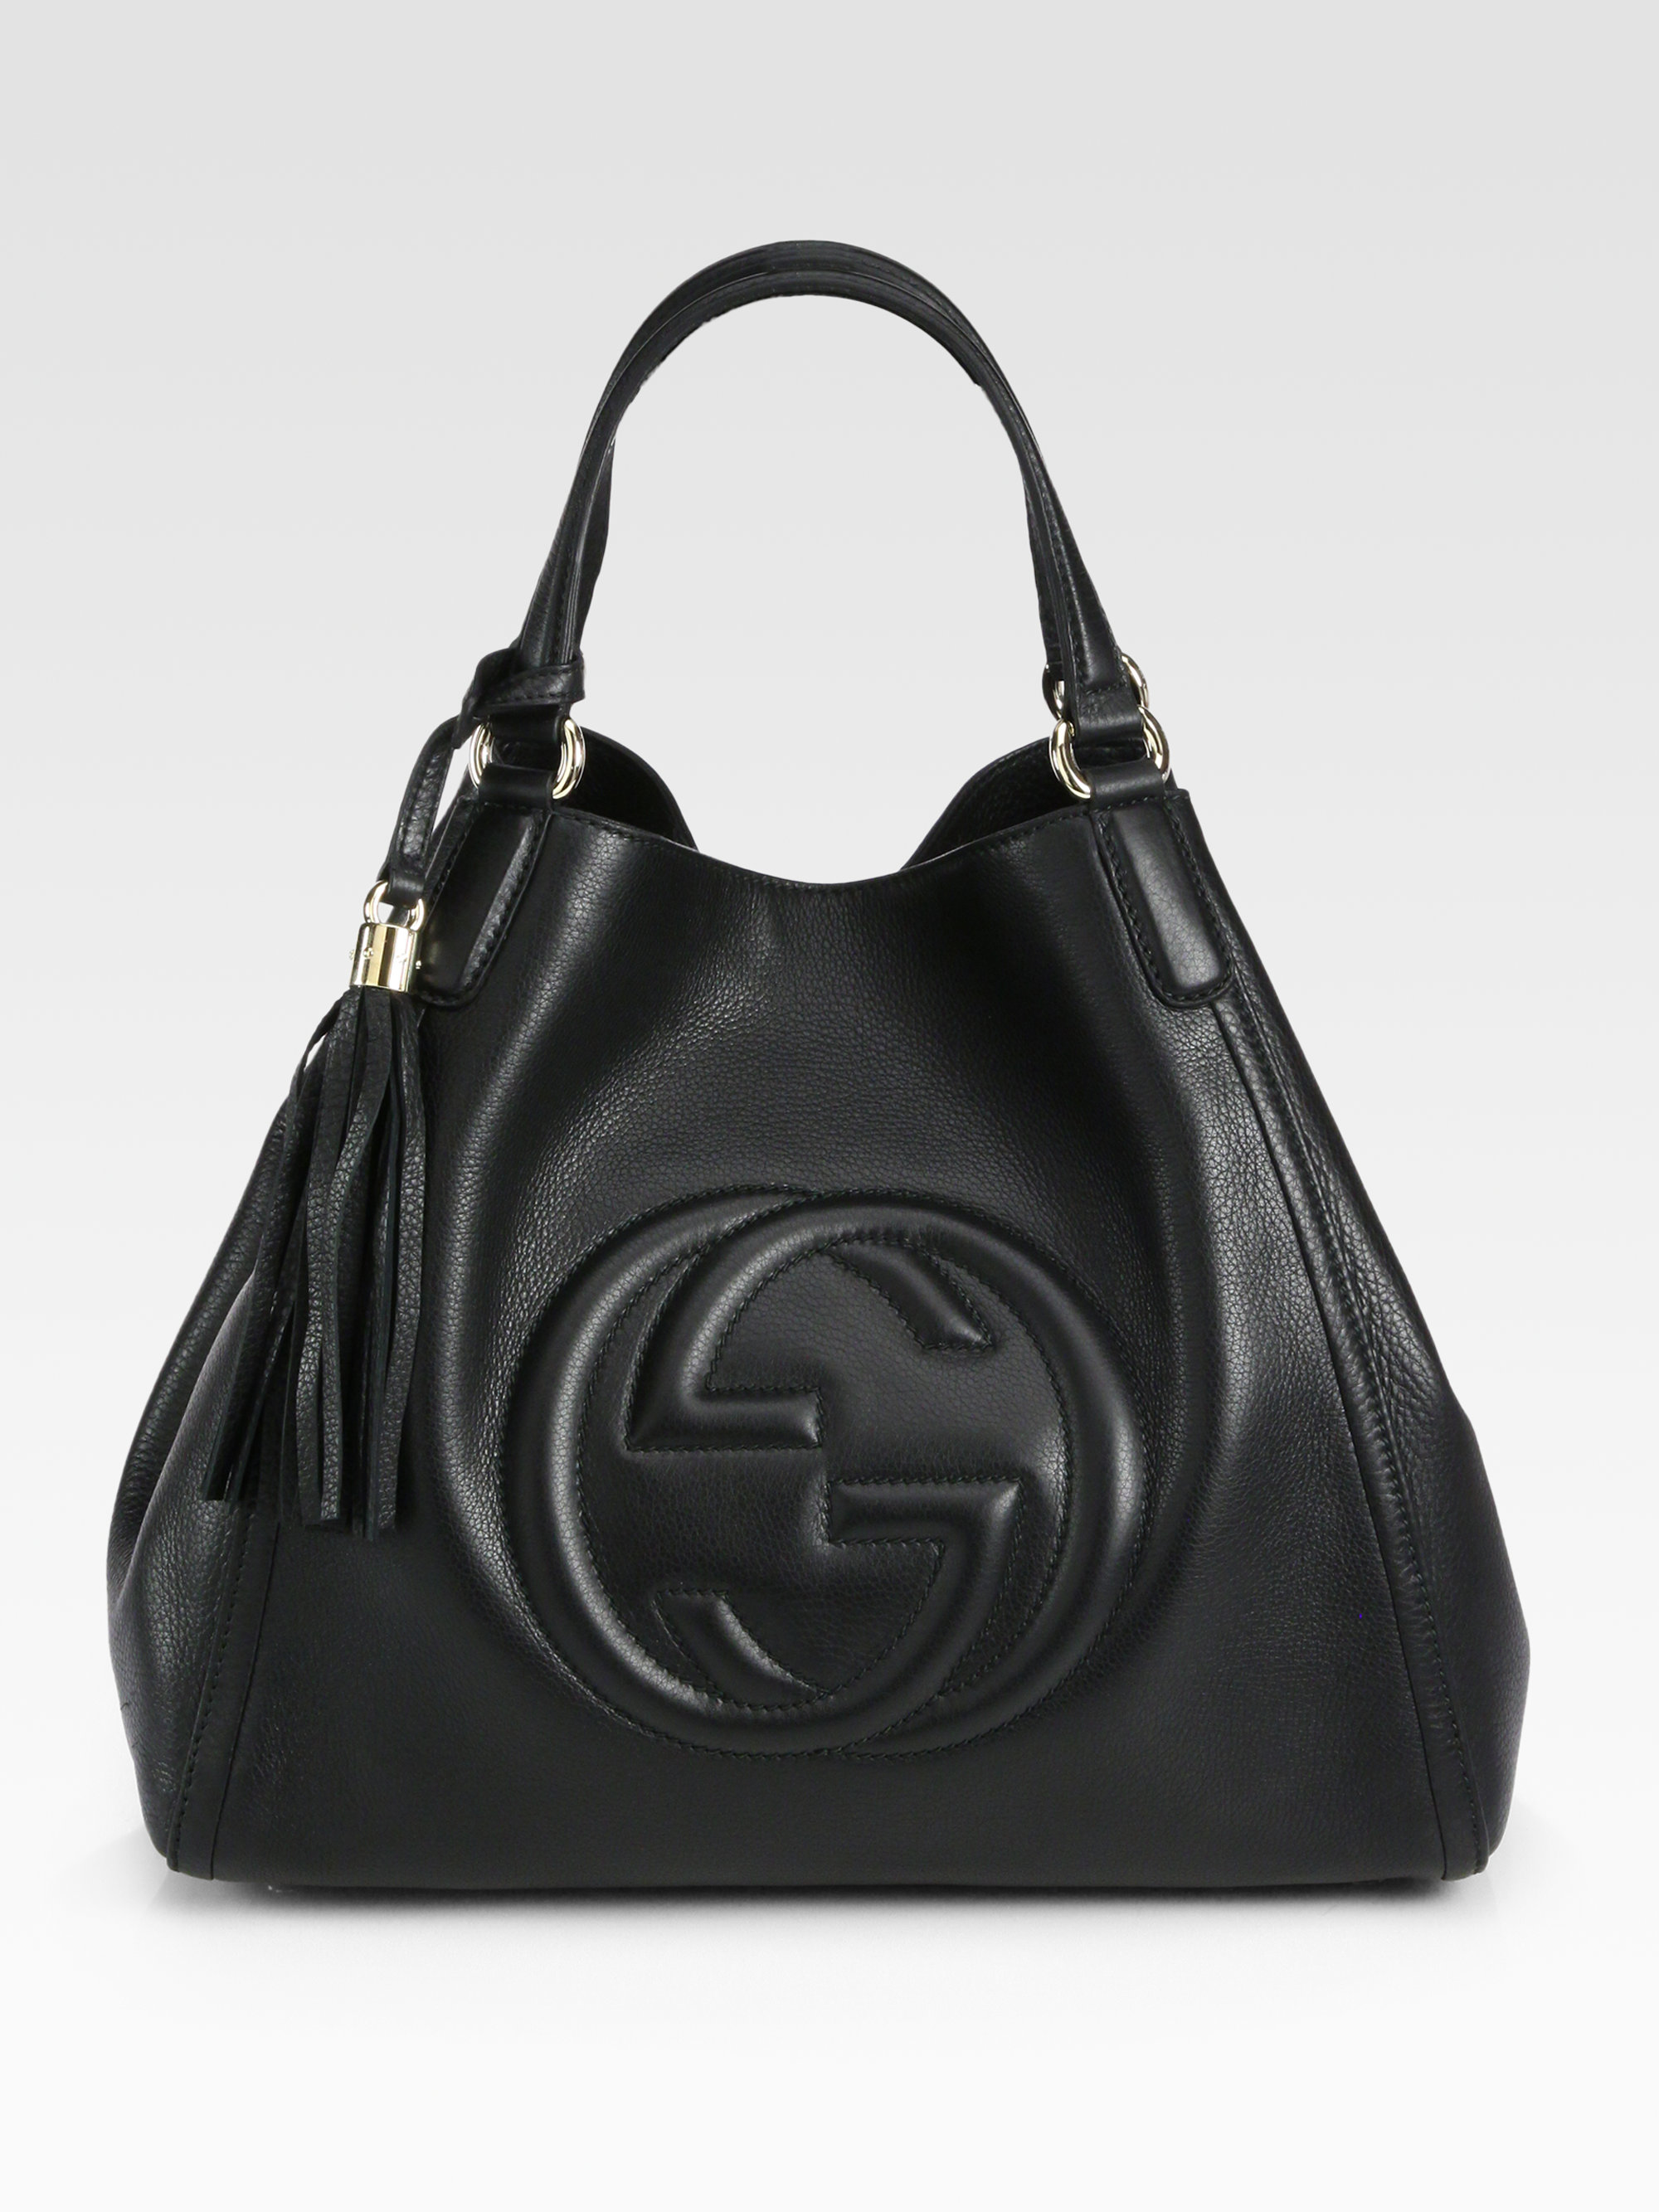 gucci soho medium hobo bag in black dark navy lyst. Black Bedroom Furniture Sets. Home Design Ideas